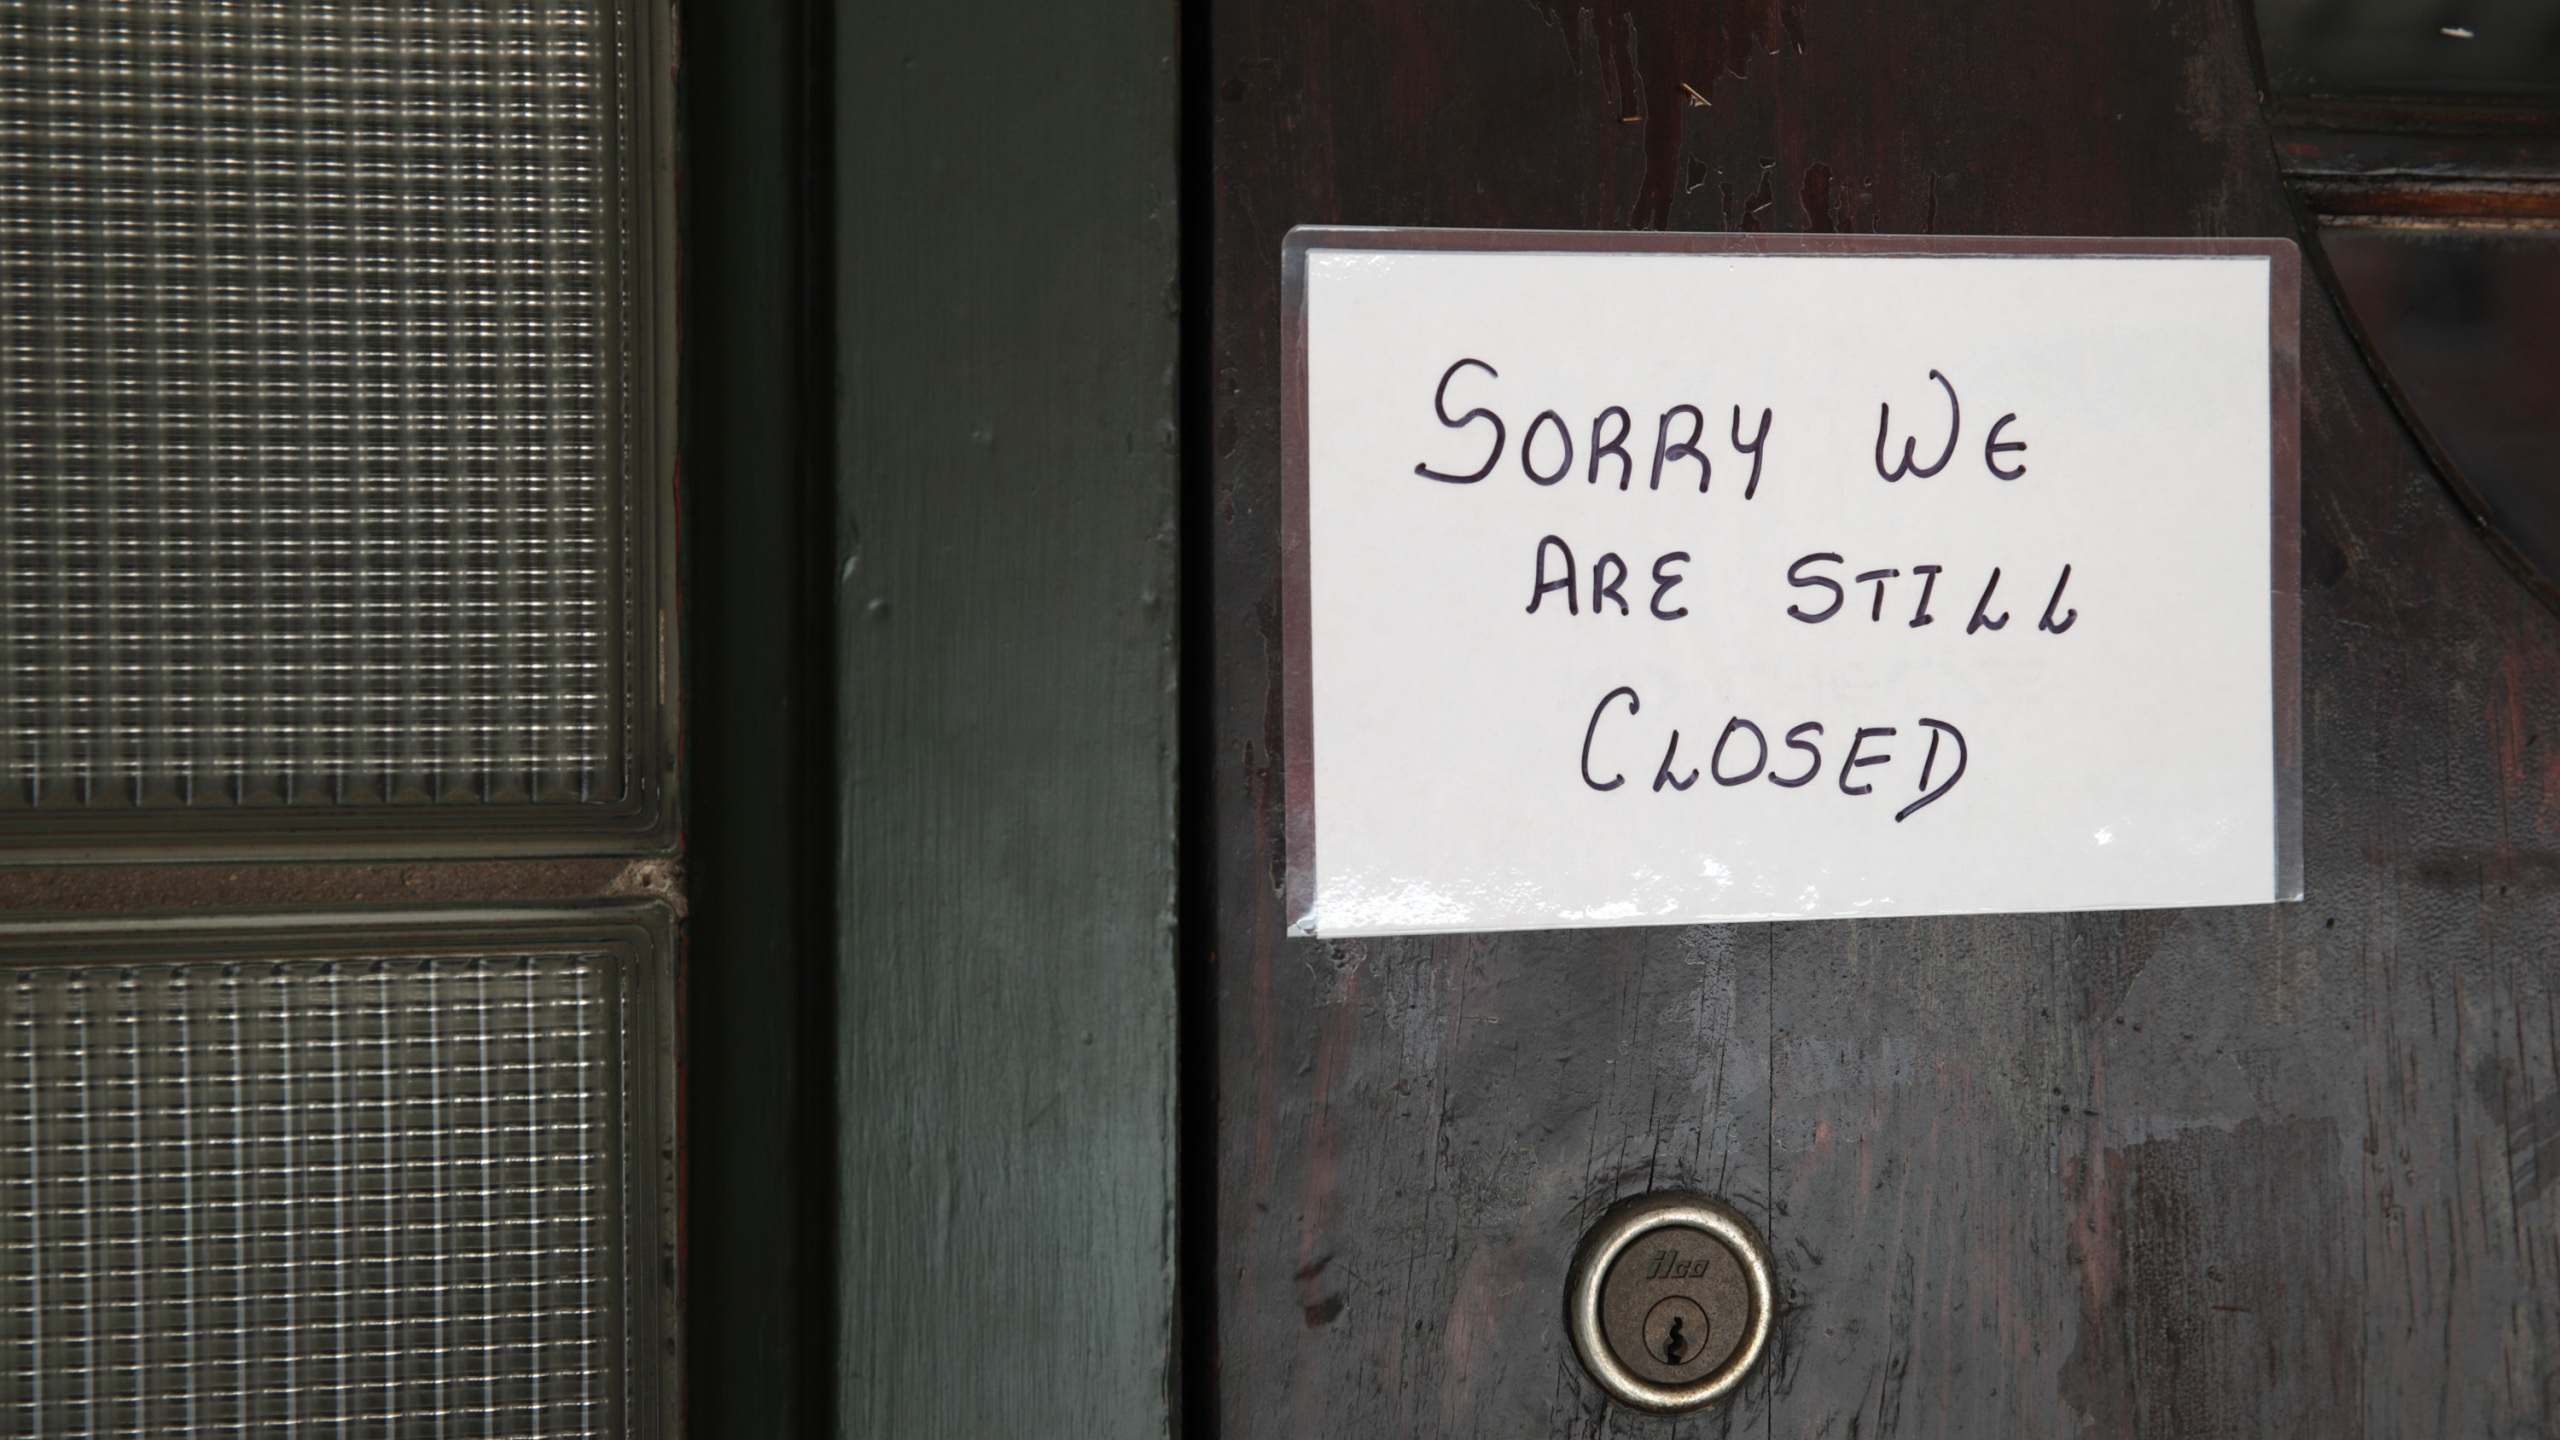 A sign on the door of Flannery's Tavern lets customers know the business is still closed on May 13, 2020 in Chesterton, Indiana. (Scott Olson/Getty Images)